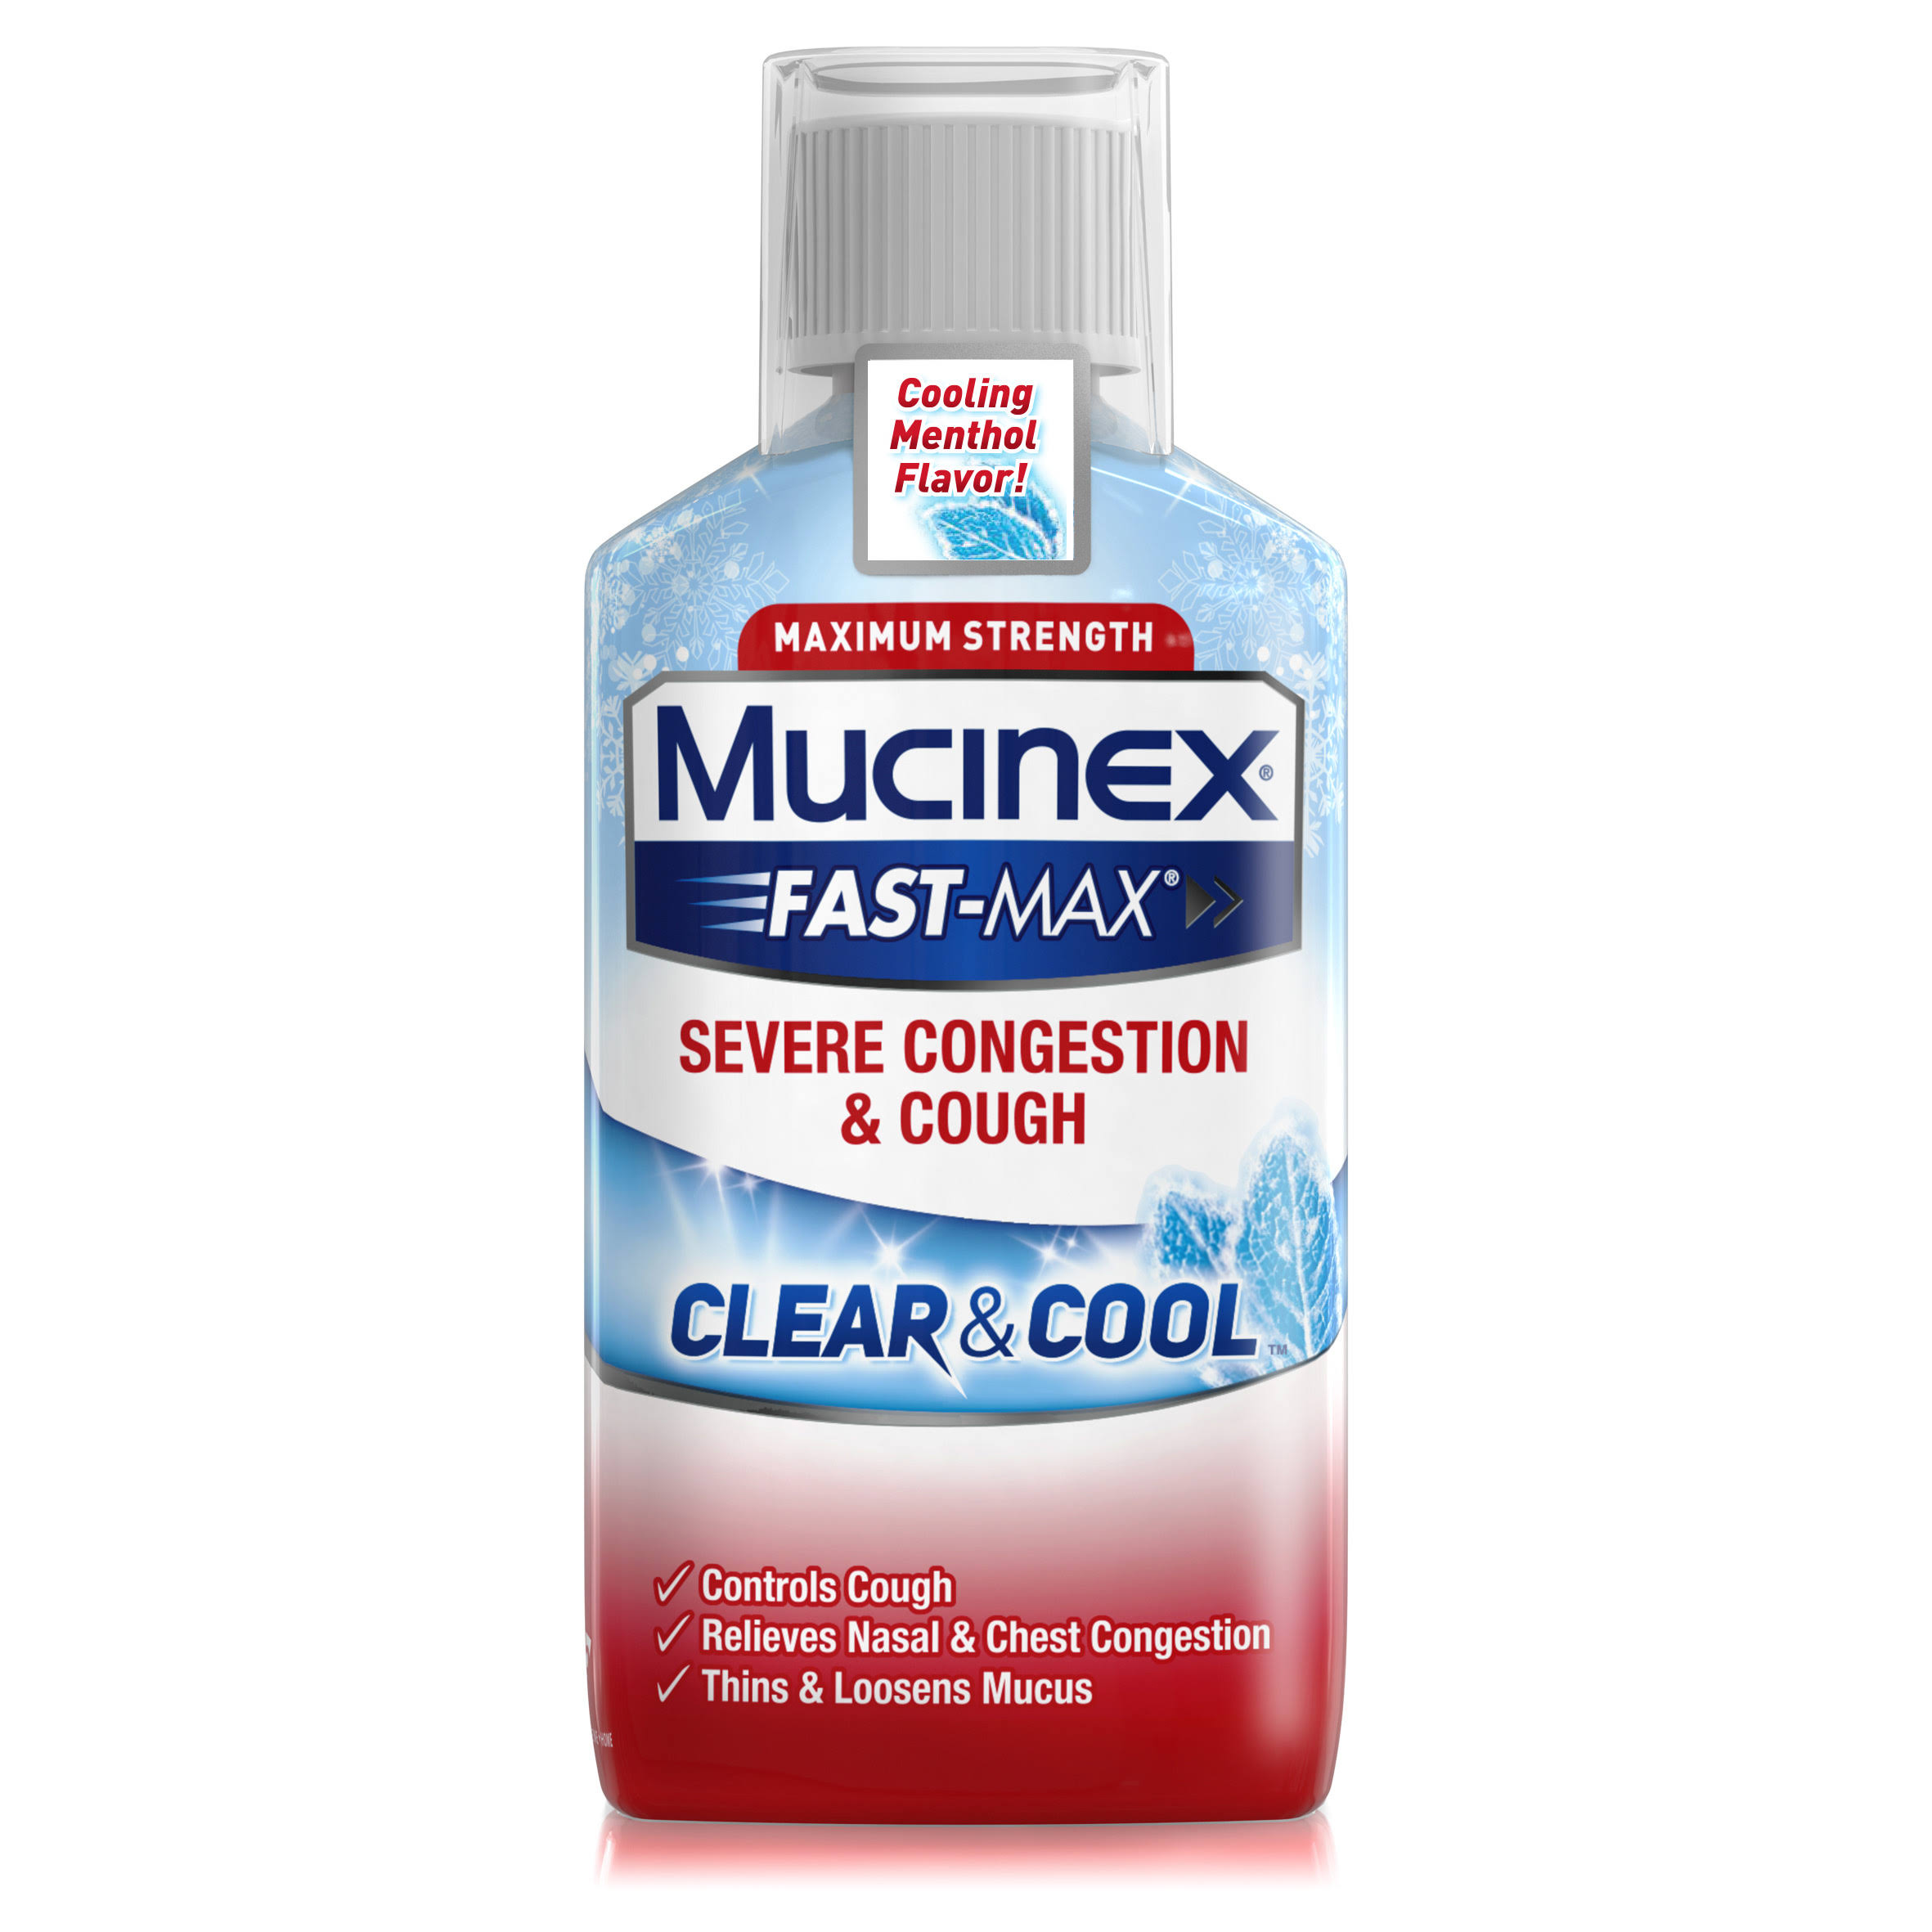 Mucinex Fast-Max Severe Congestion & Cough Medicine - 6oz, Clear & Cool